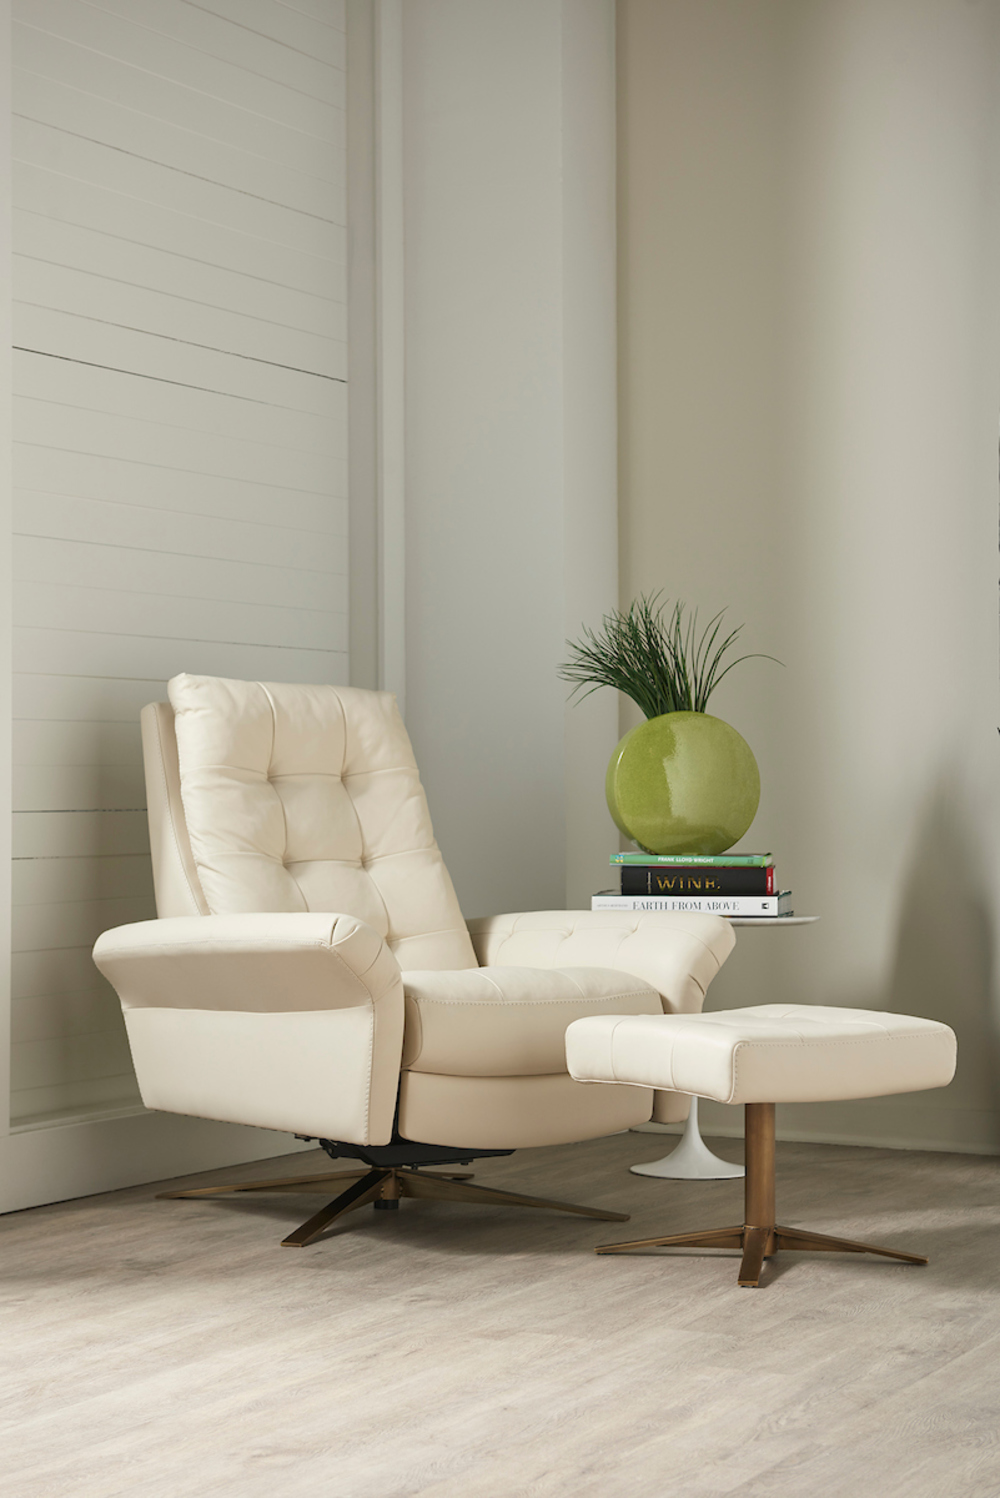 American Leather - Pielus Comfort Air Chair Large Plus Ottoman Combo